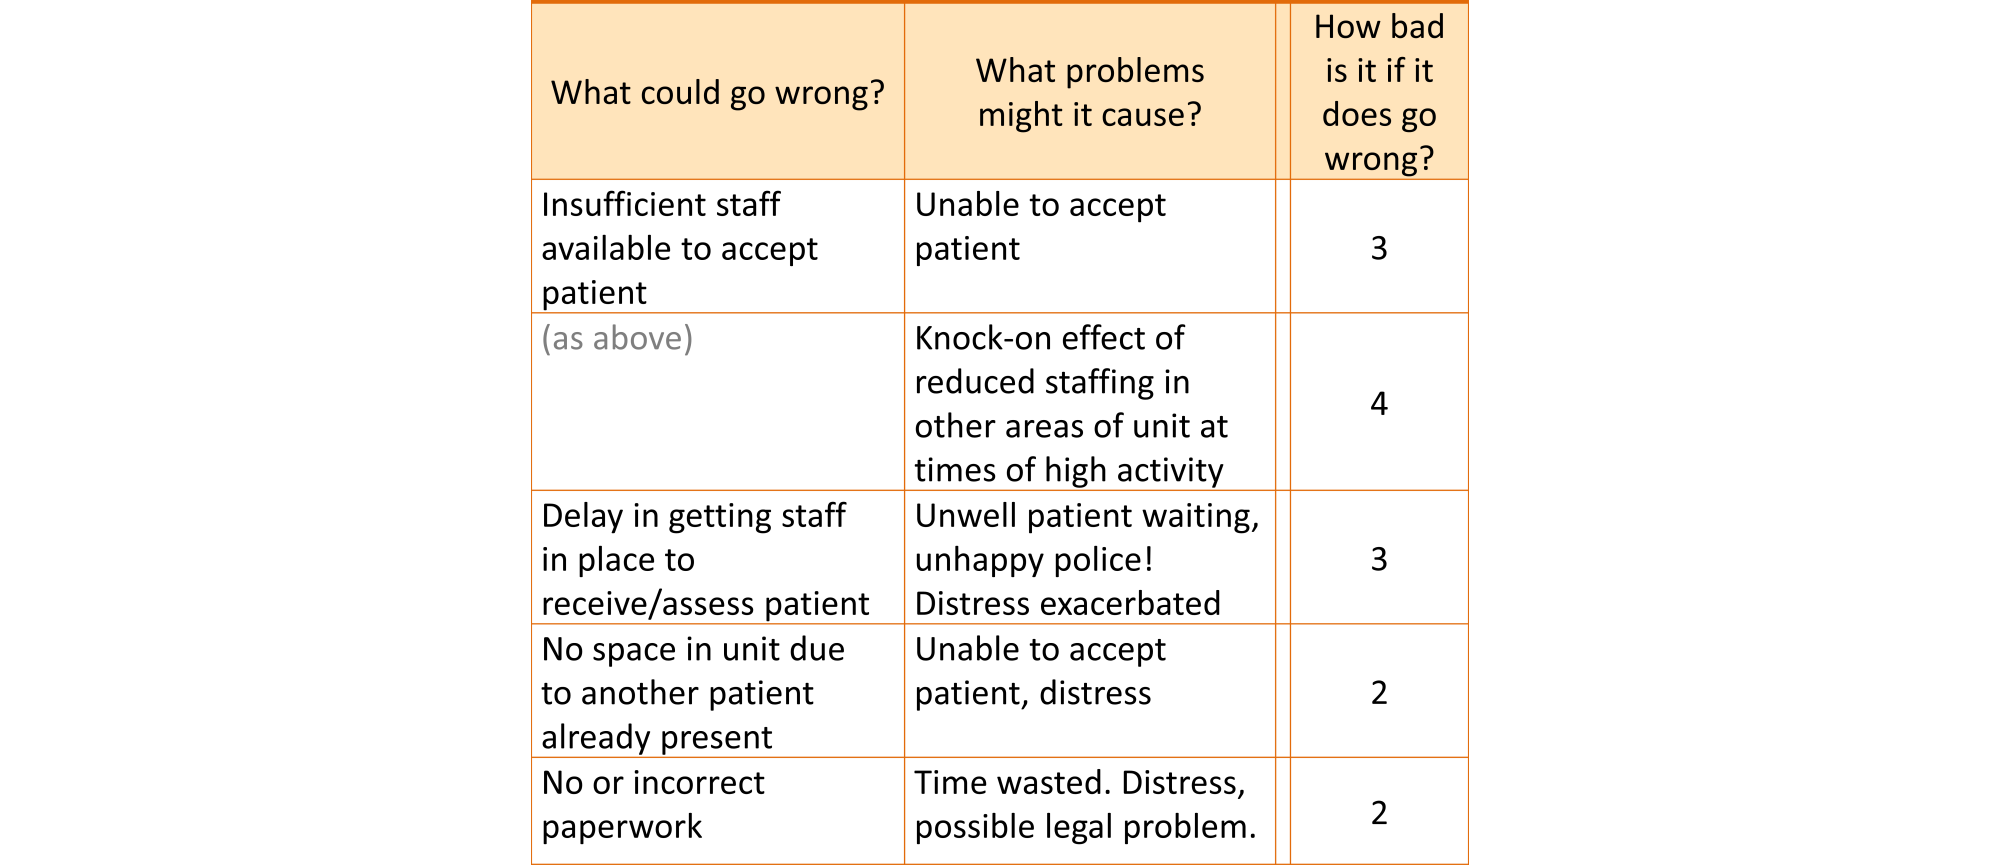 Portion of a risk table, showing the impact ratings for some events. For example, one of the things that could go wrong is insufficient staff being available to accept a patient. This may result in being unable to accept the patient altogether with an impact rating of 3. An alternative is that staff are pulled from other areas of the unit, resulting in reduced staffing in those areas. This was given an impact rating of 4. Another possibility is that there is a delay in getting staff in place, leading to the unwell patient having to wait and the police becoming unhappy. This was also given a rating of 3.